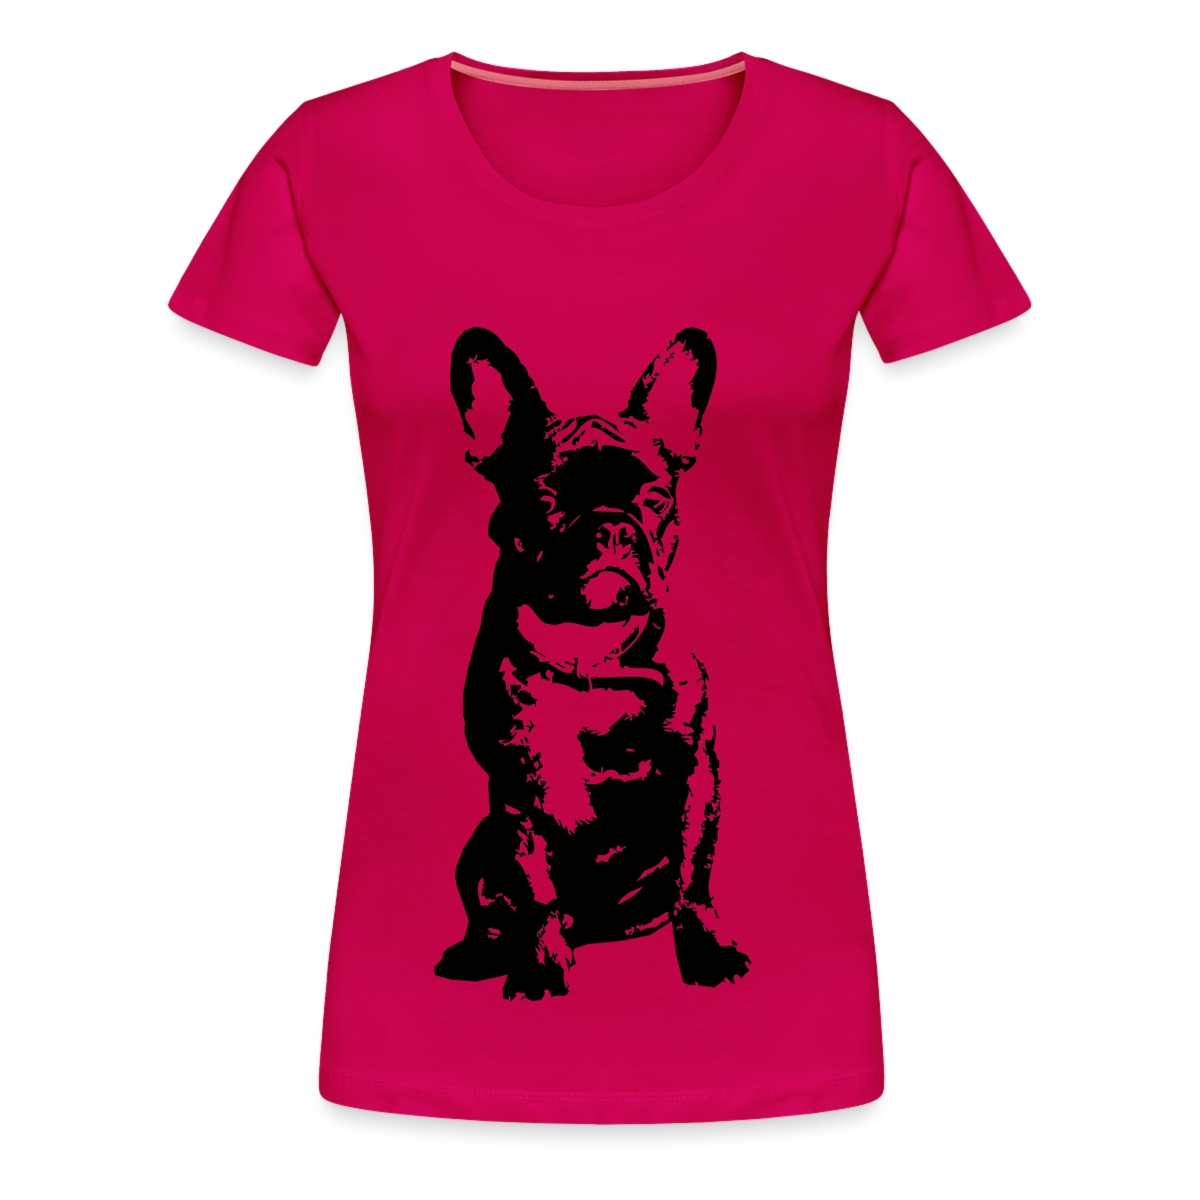 French-Bulldog-Fanzoesische-Bulldogge-Frenchie-Frauen-Premium-T-Shirt-von